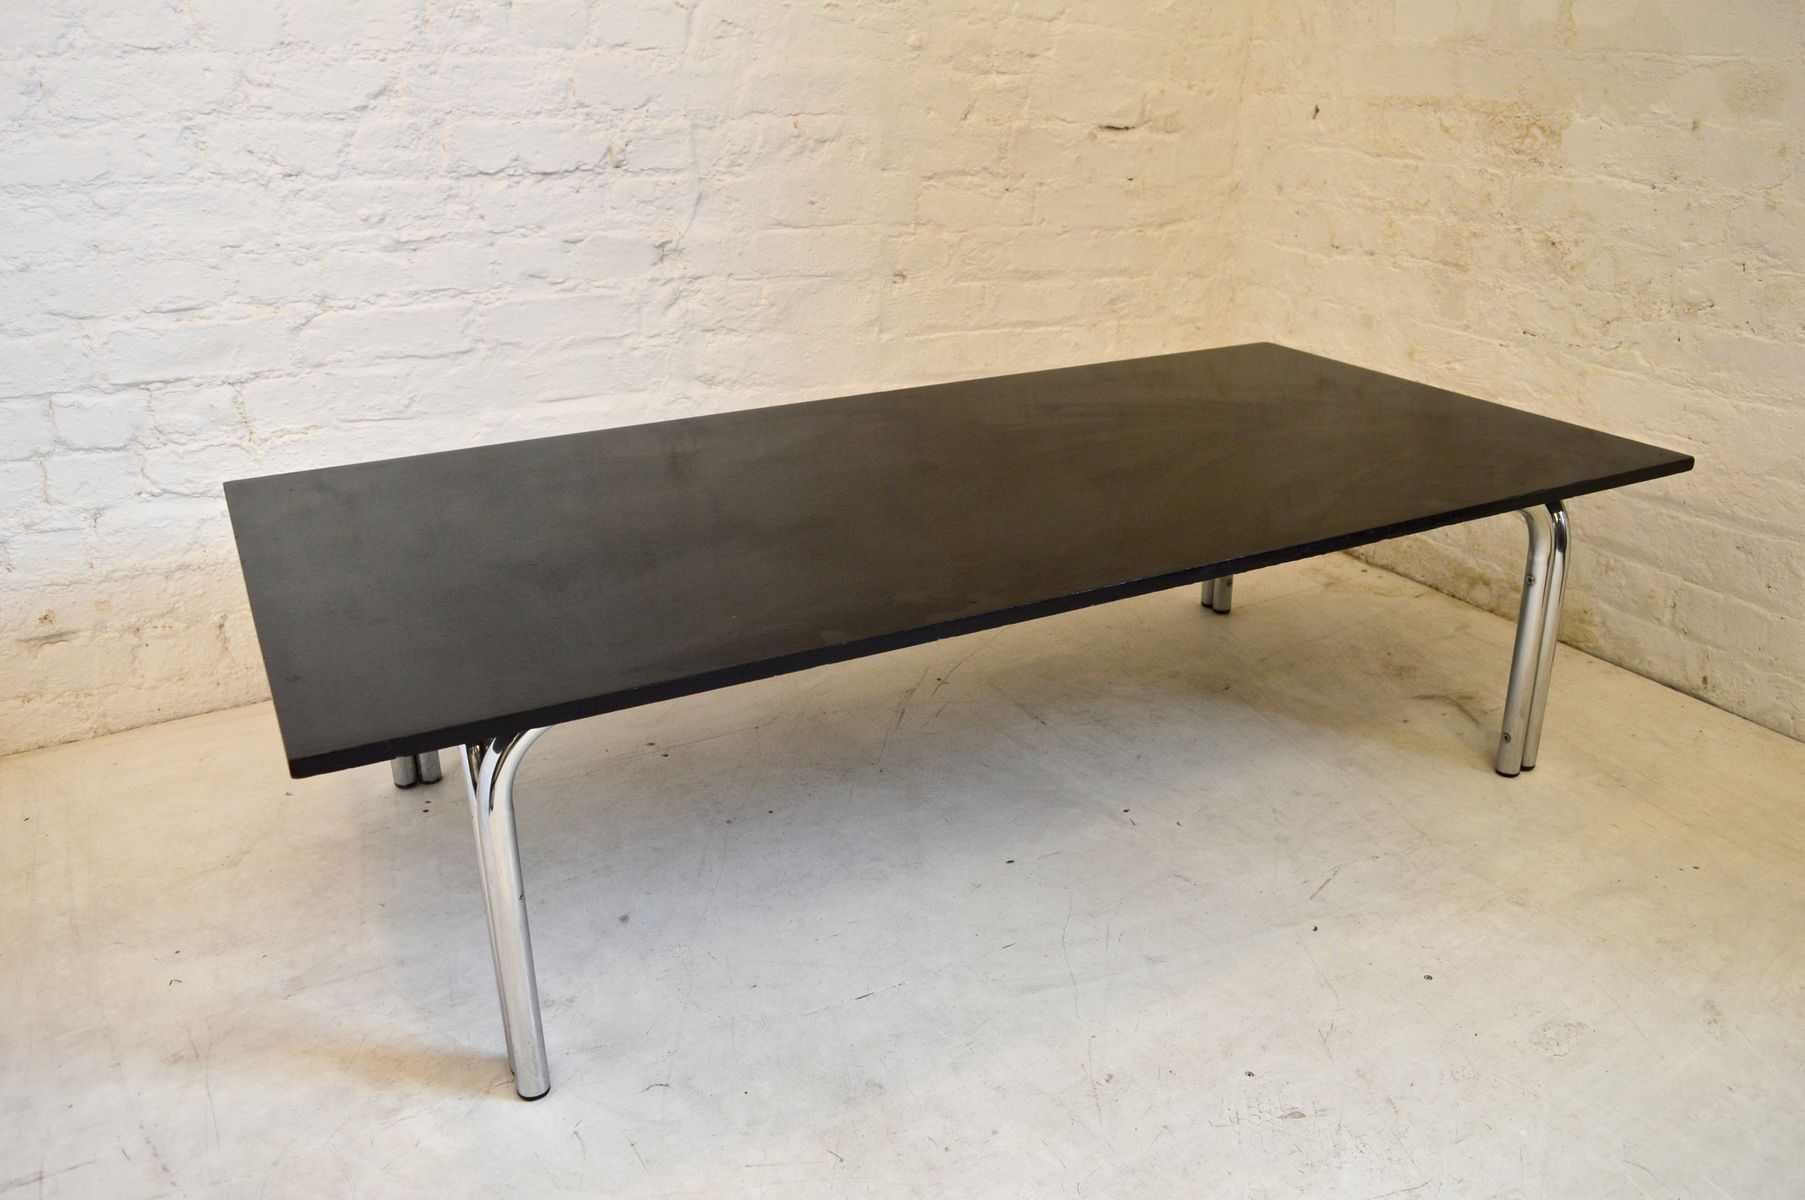 Mid Century Modern Coffee Table by Tim Bates for Pieff 1970s for